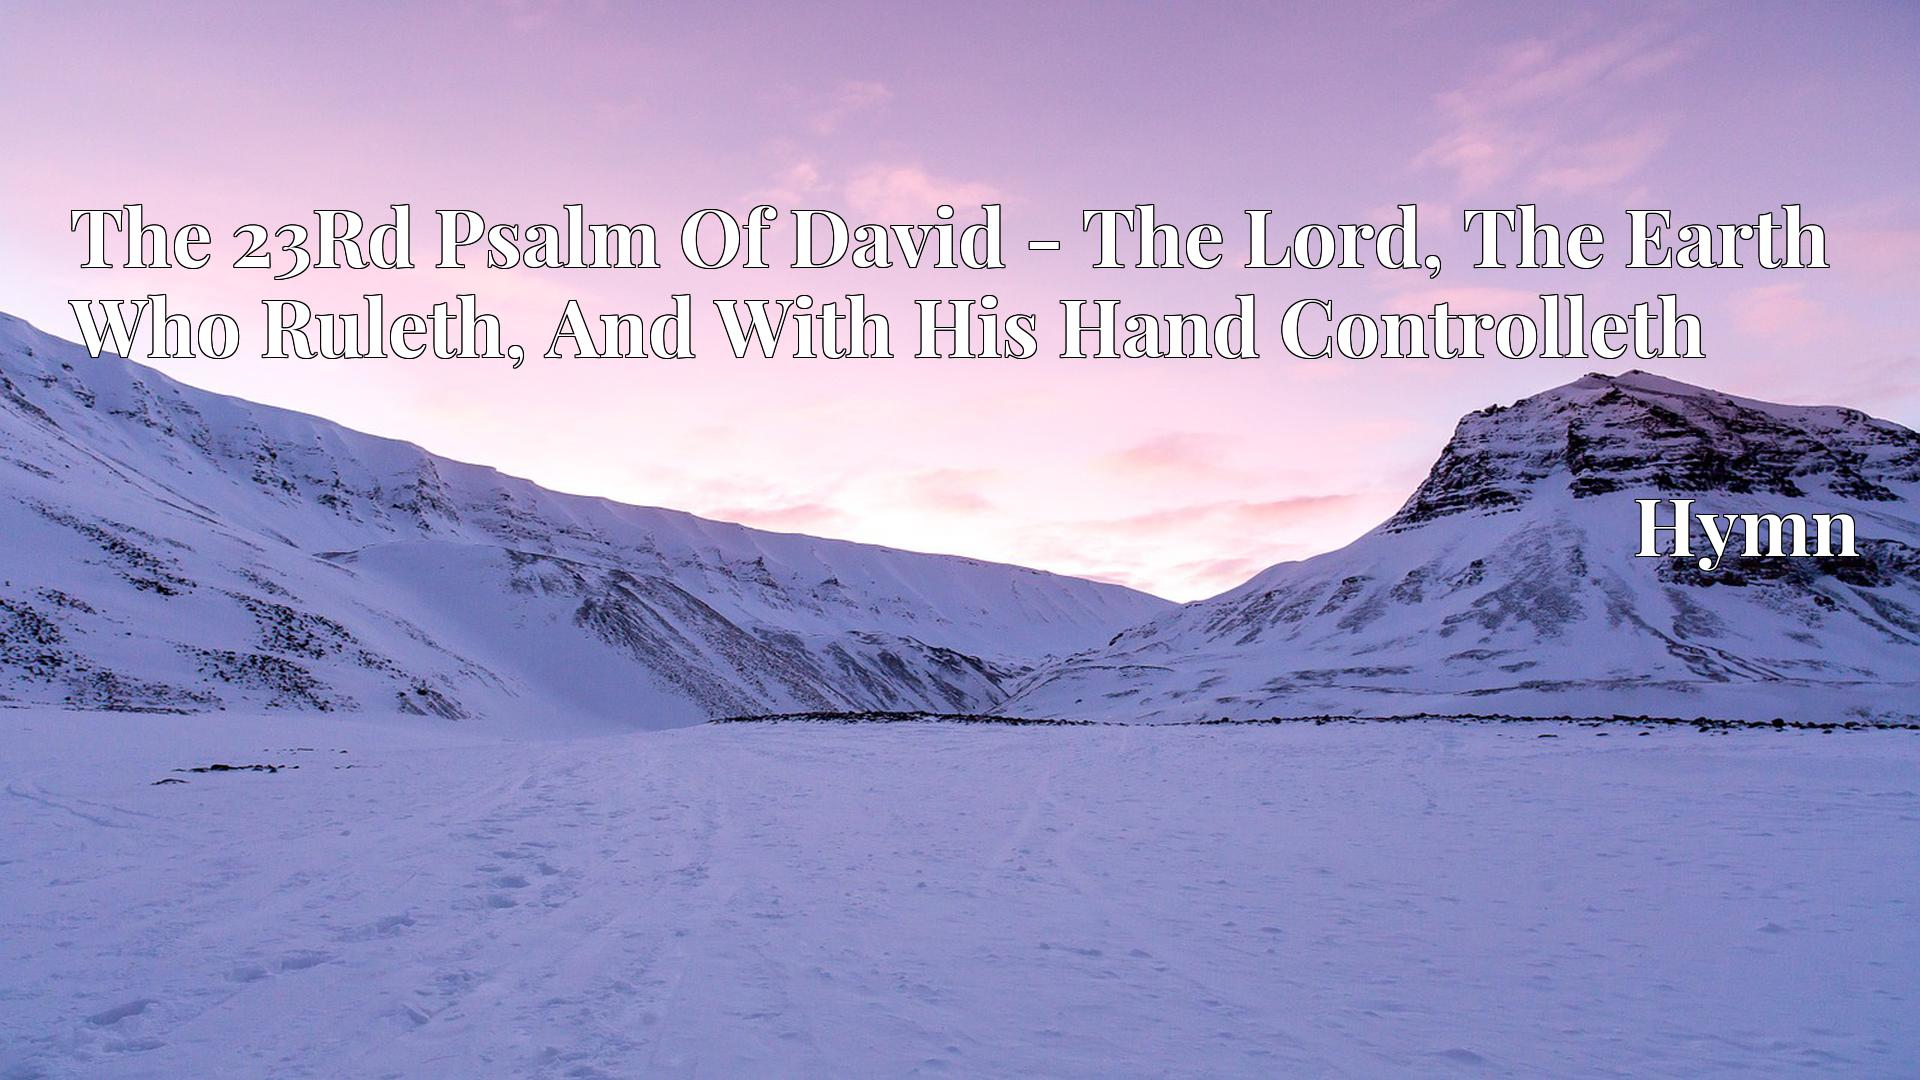 The 23Rd Psalm Of David - The Lord, The Earth Who Ruleth, And With His Hand Controlleth - Hymn